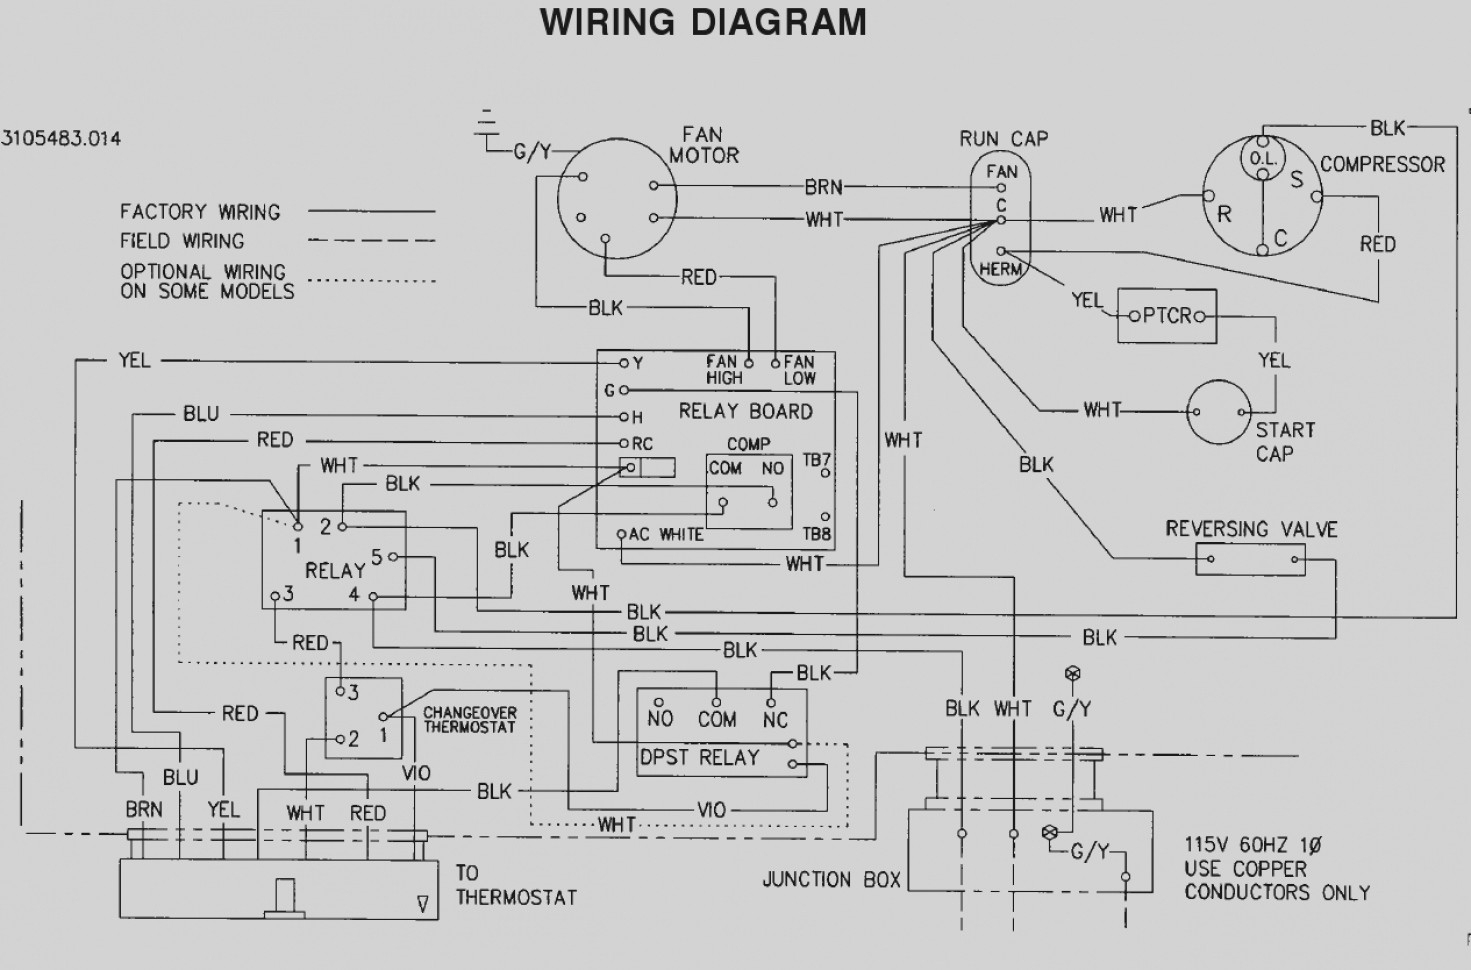 hight resolution of uconnect wiring diagram mitsubishi raider wiring diagramuconnect wiring diagram mitsubishi raider schematic diagram downloaduconnect wiring diagram